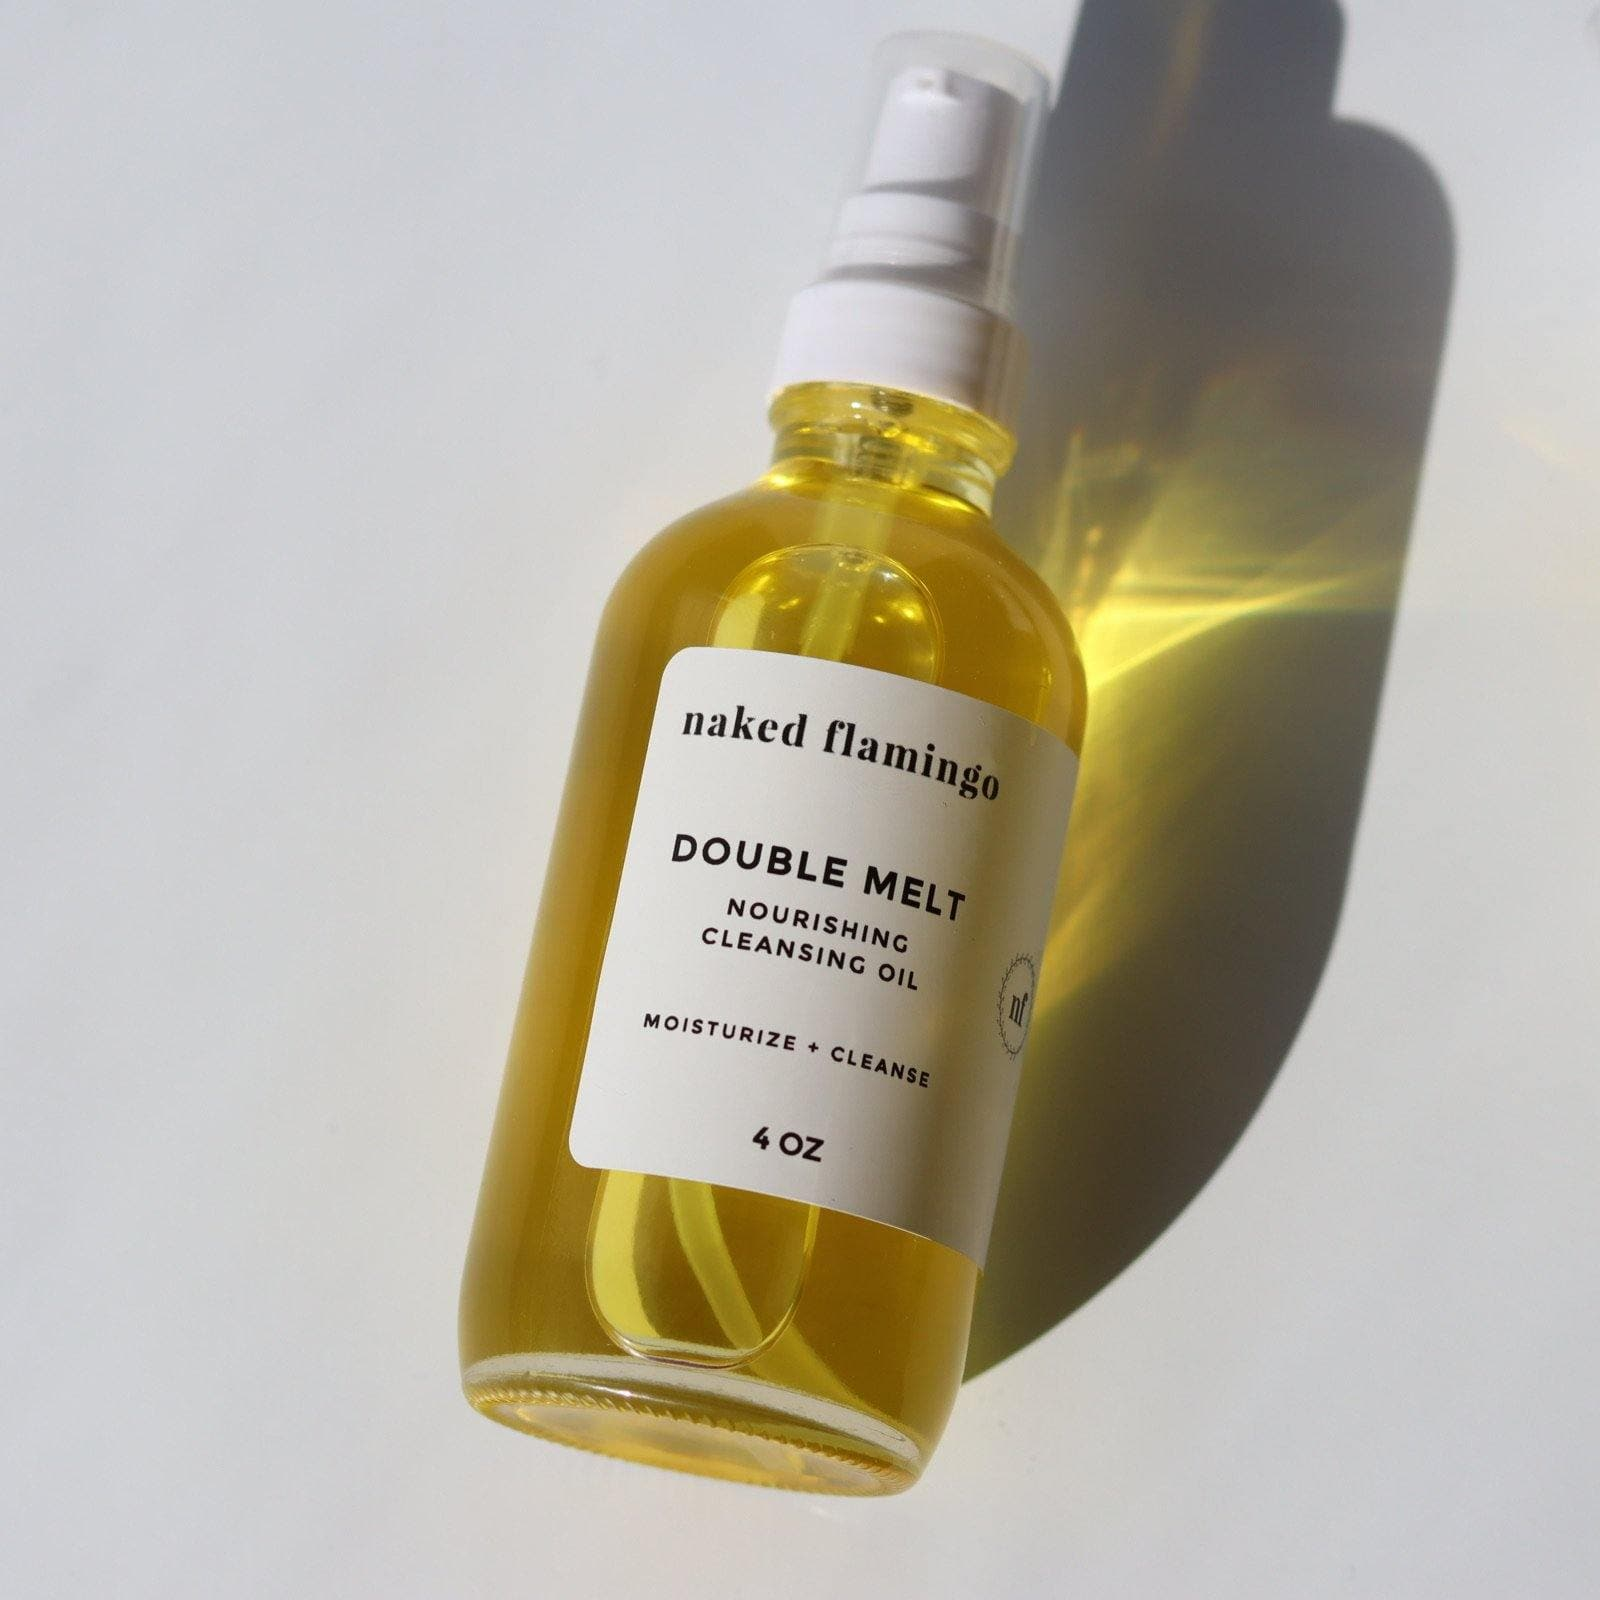 Double Melt Cleansing Oil